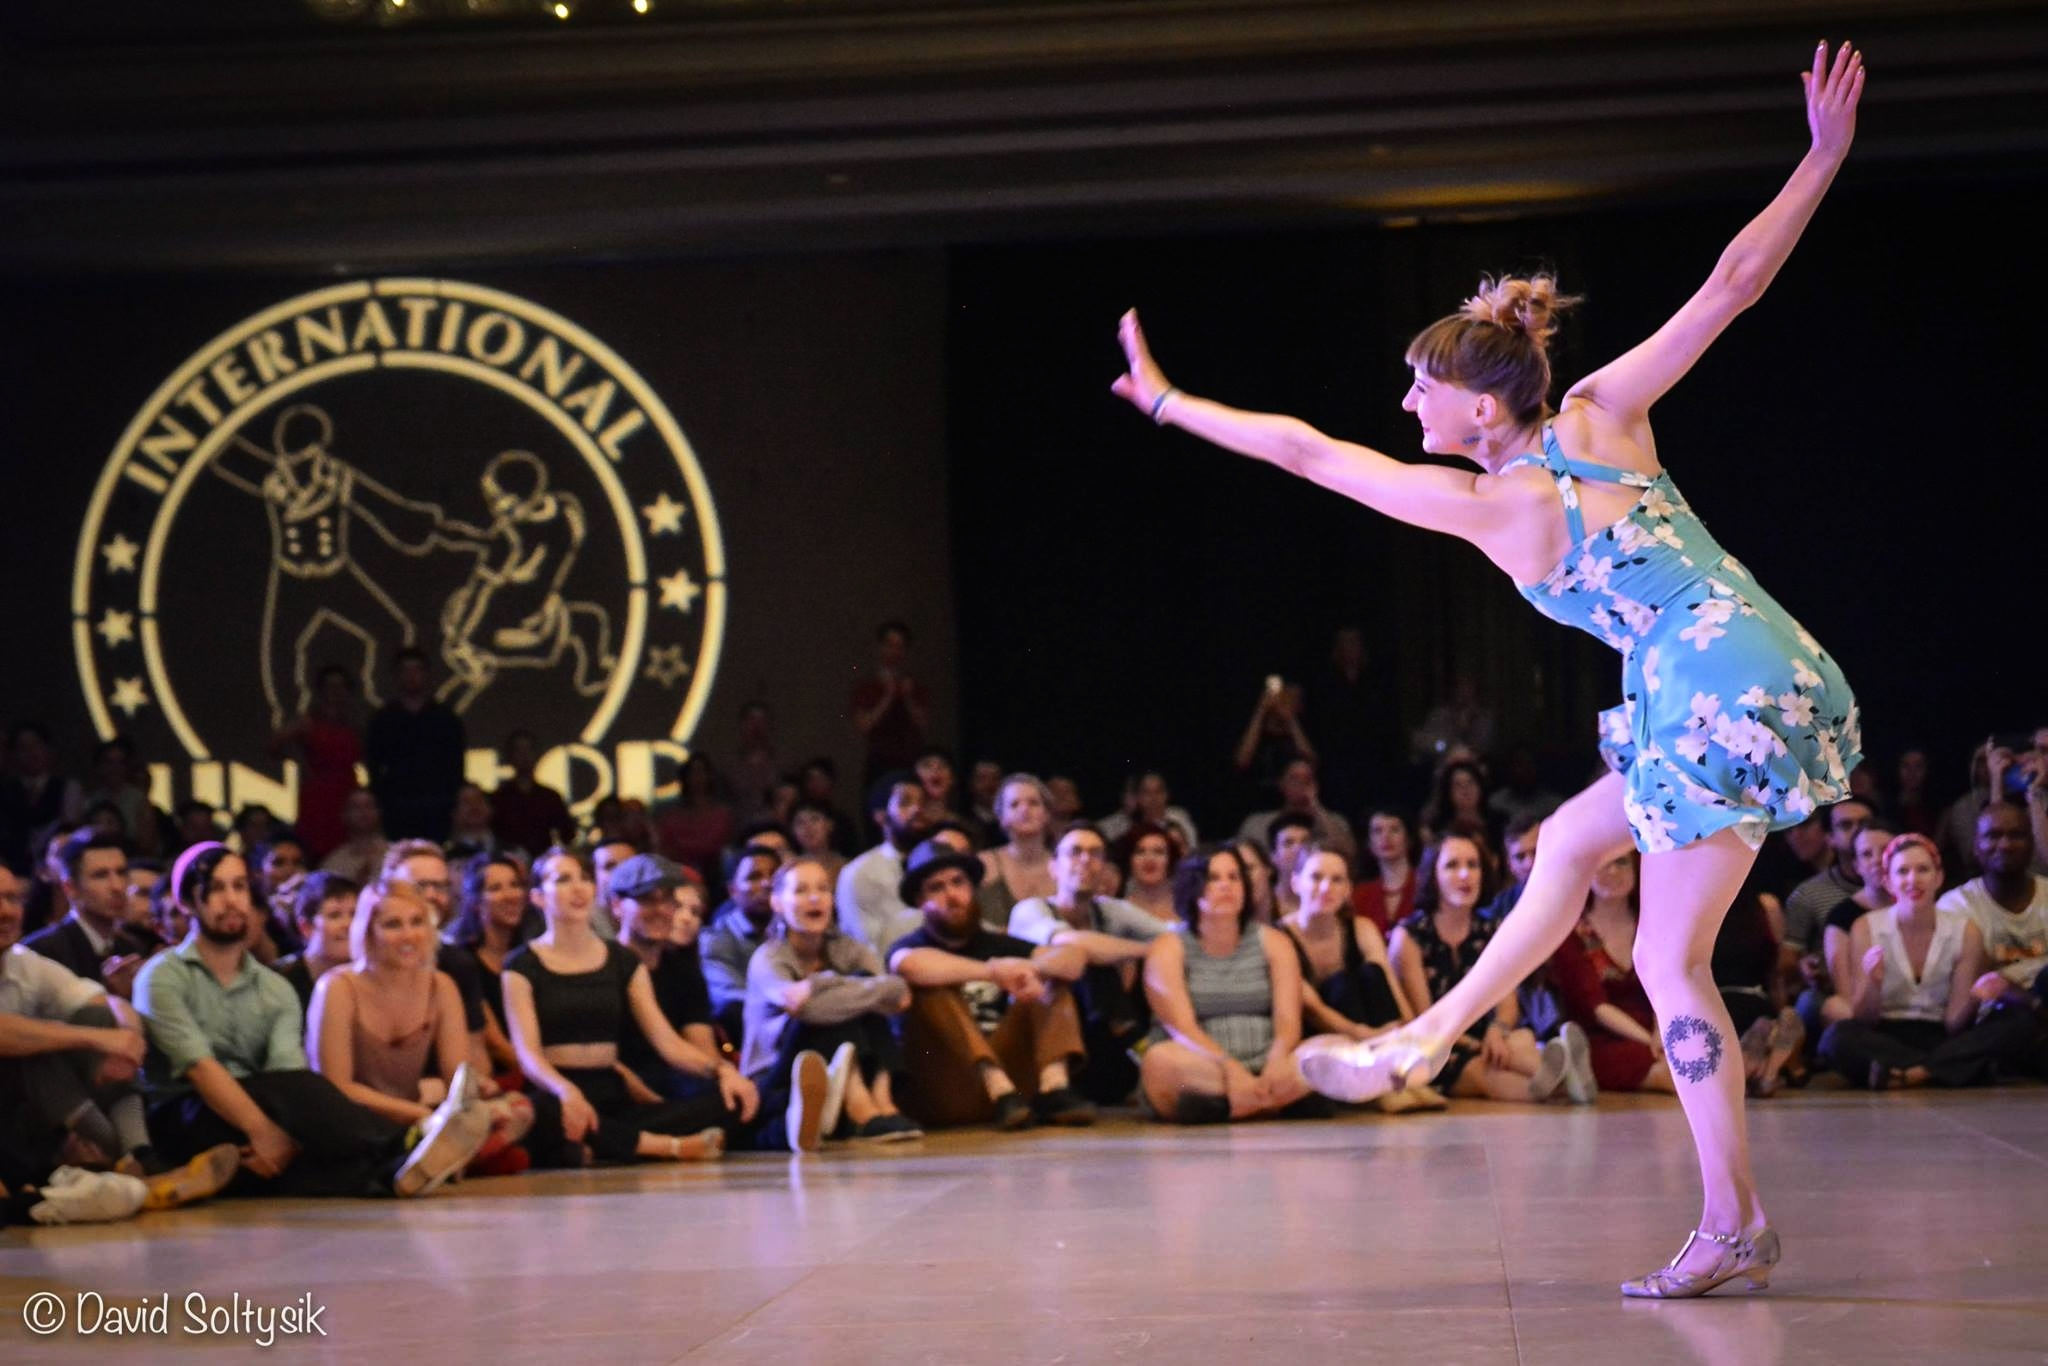 International-Lindy-Hop-Championships-7.jpg